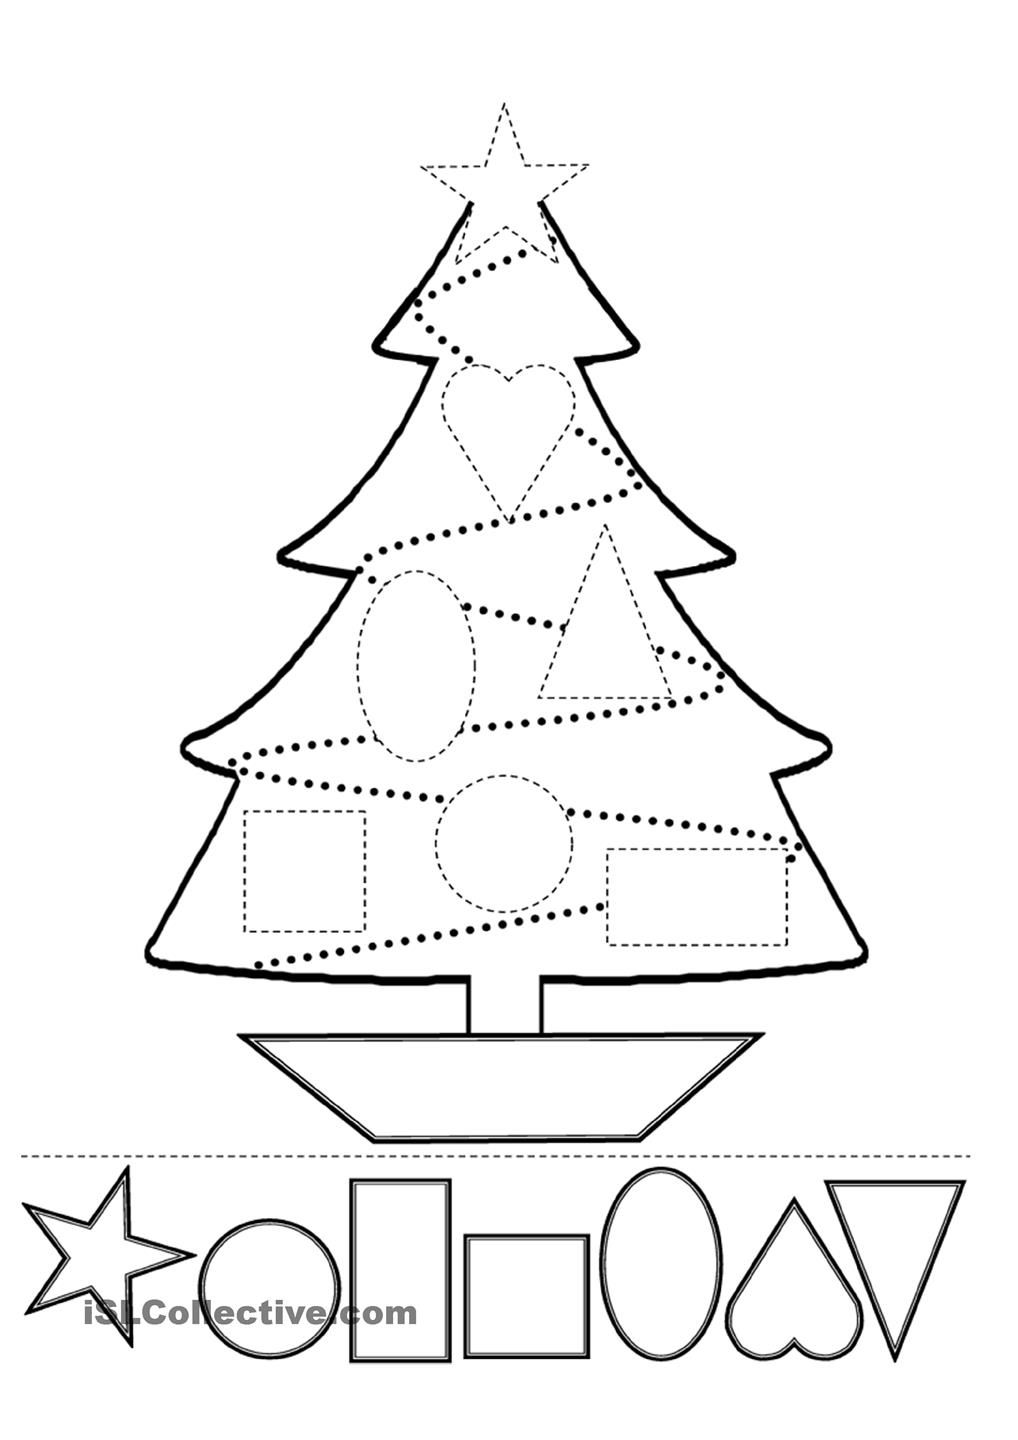 Fun Educational Christmas Activities For Children  Printable